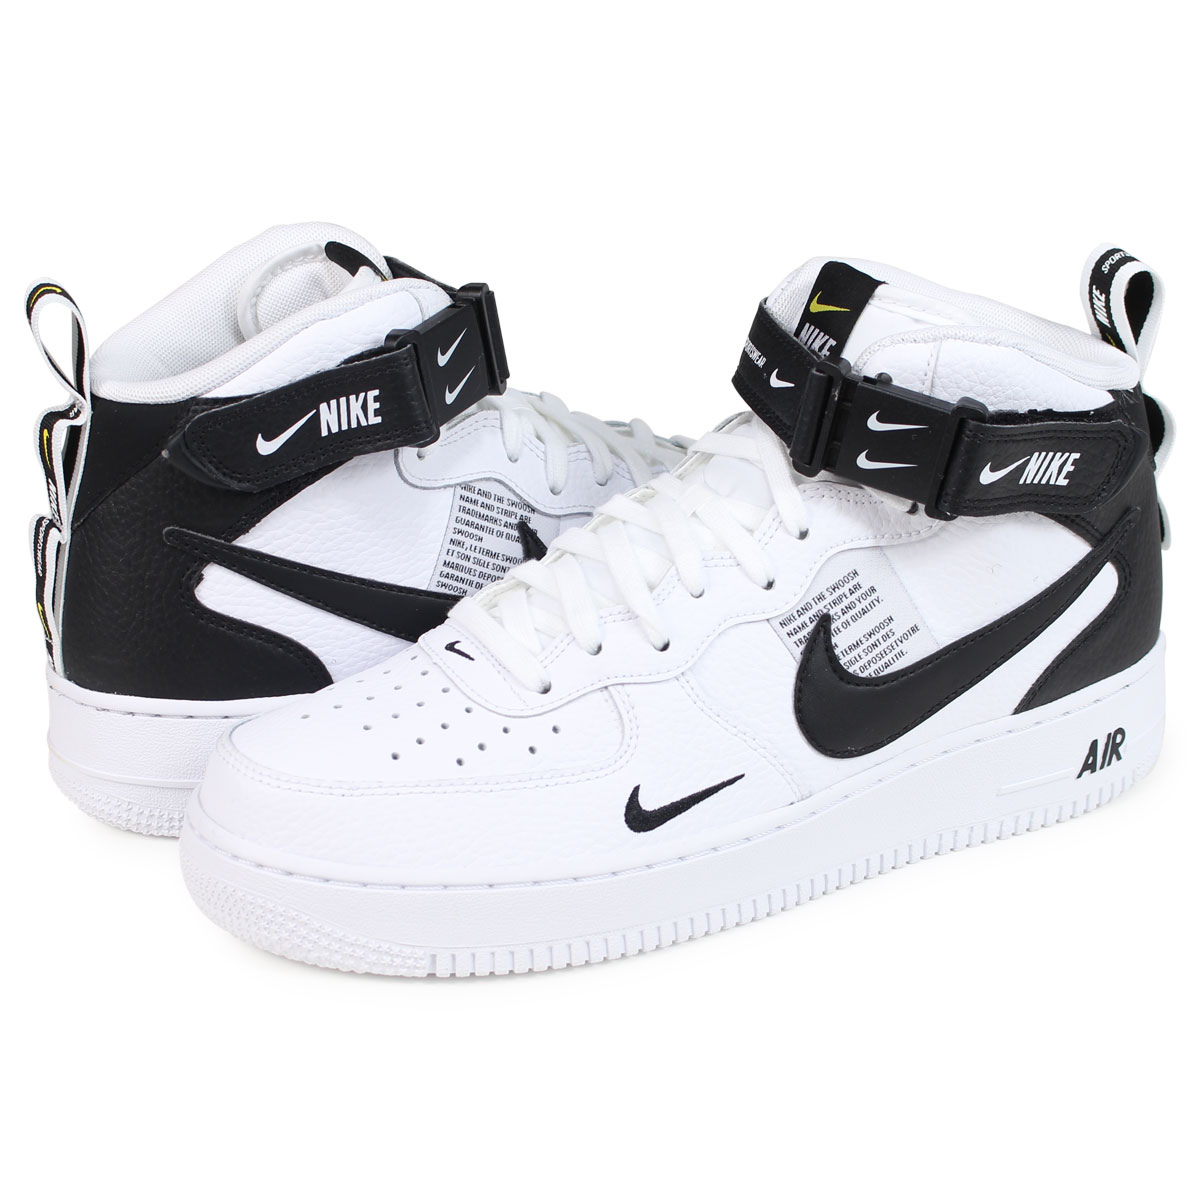 6f6a0b36bf34 ALLSPORTS  Nike NIKE air force 1 sneakers men AIR FORCE 1 MID 07 LV8 ...